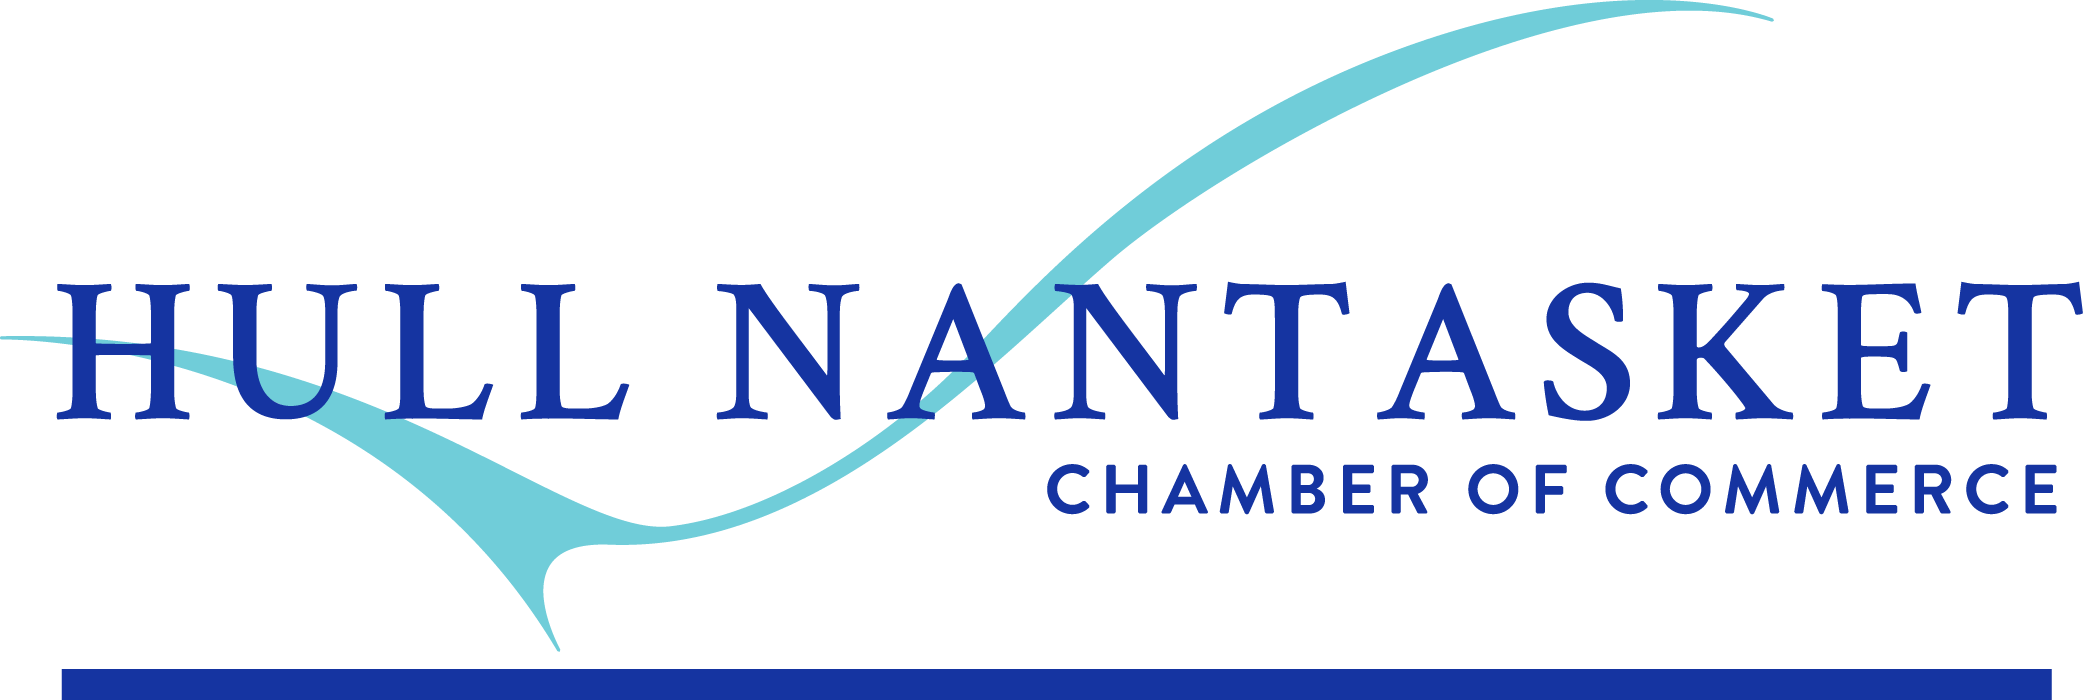 Hull Nantasket Chamber of Commerce